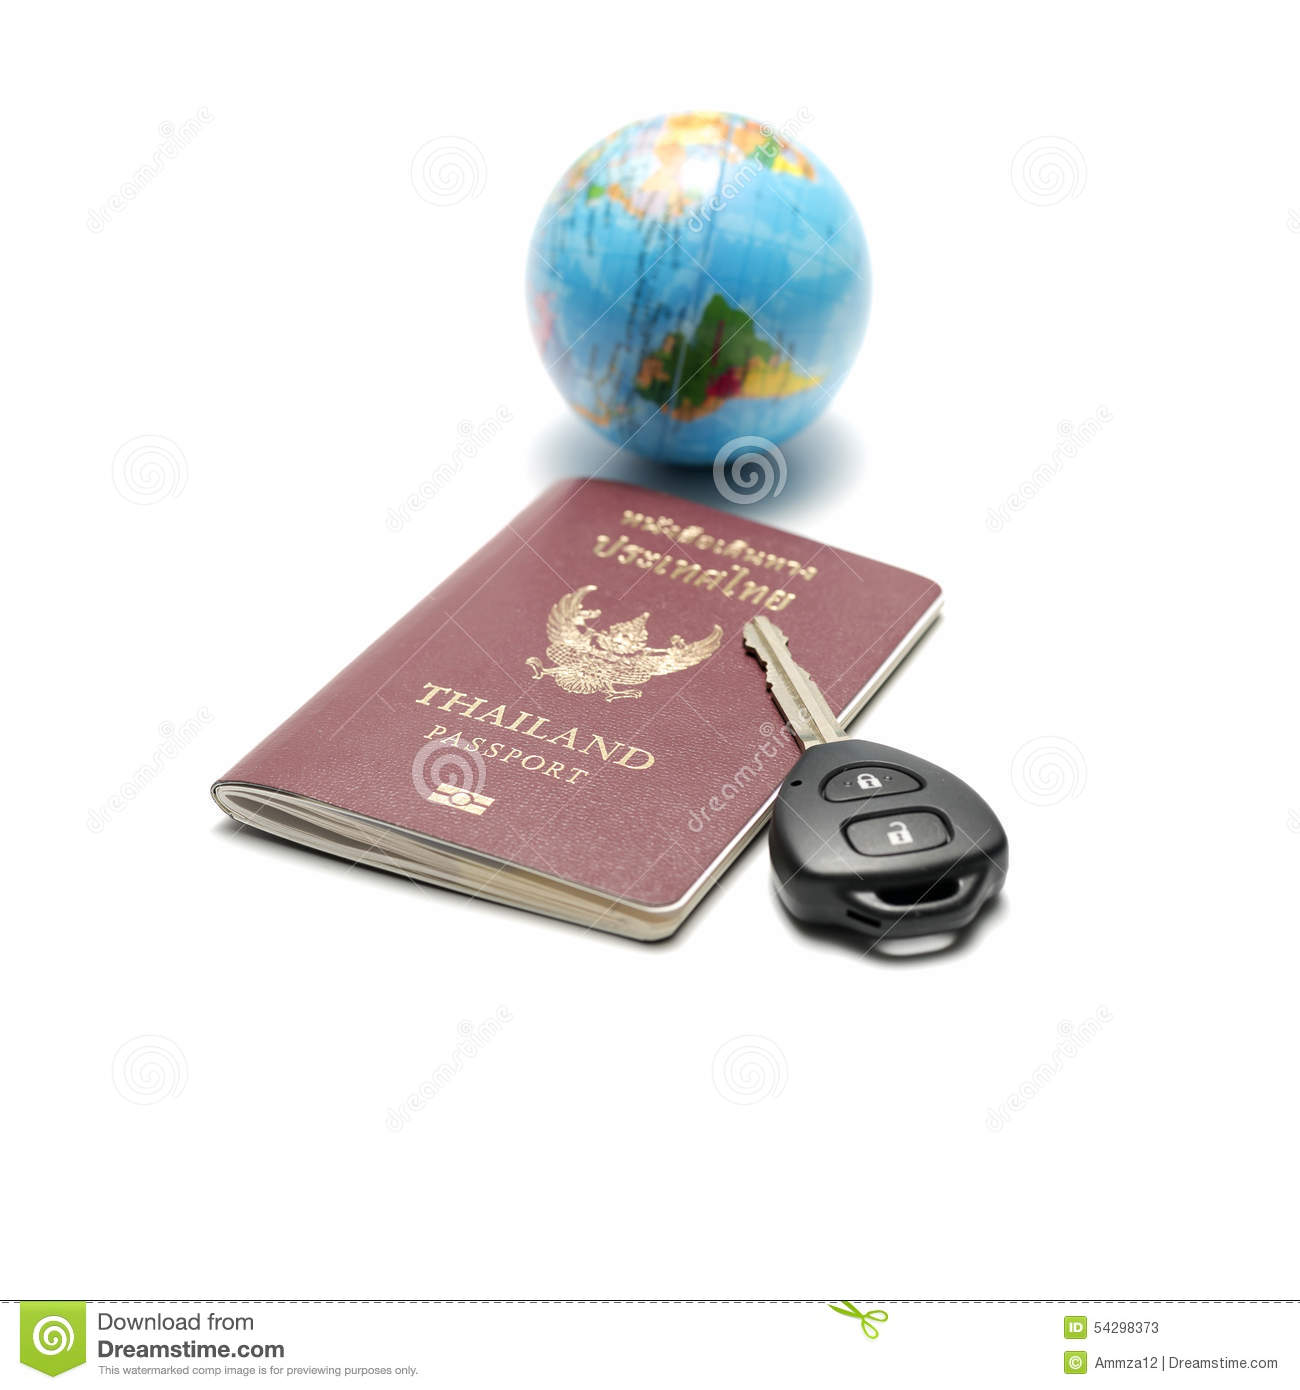 Passport Car Key And Earth Ball Royalty-Free Stock